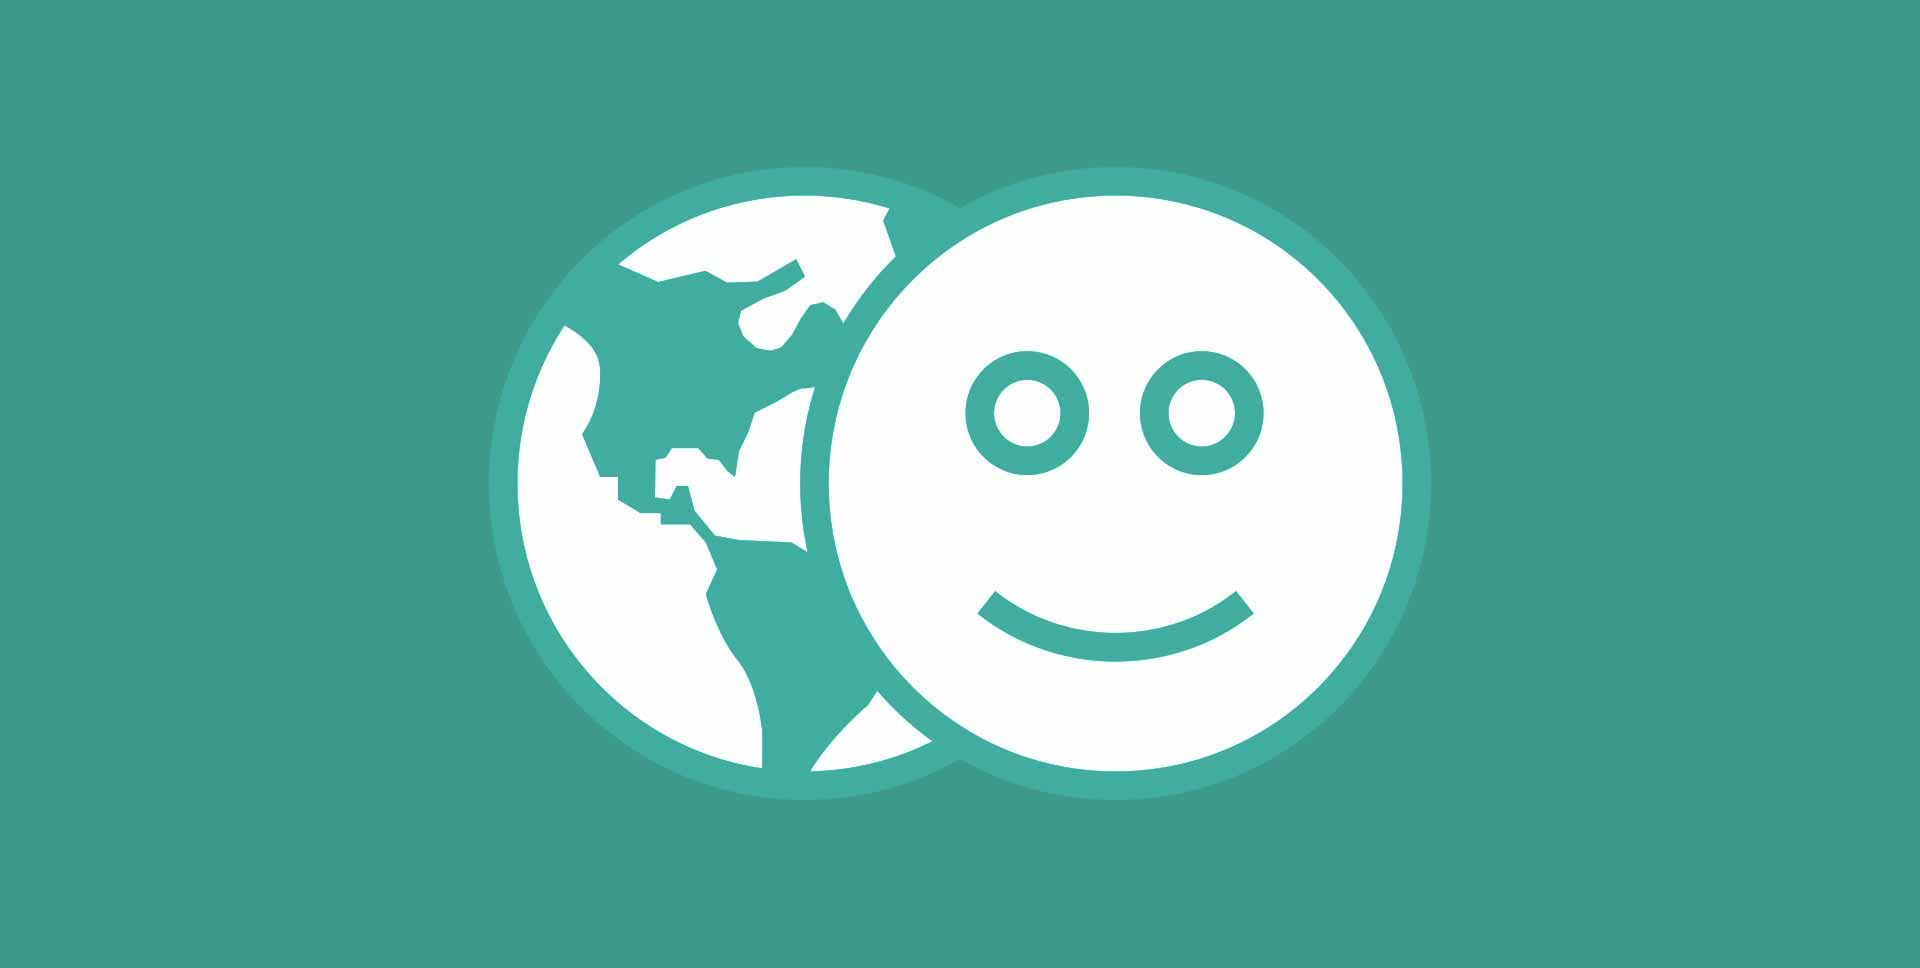 Illustration of the world and a smiley face, both on a green background